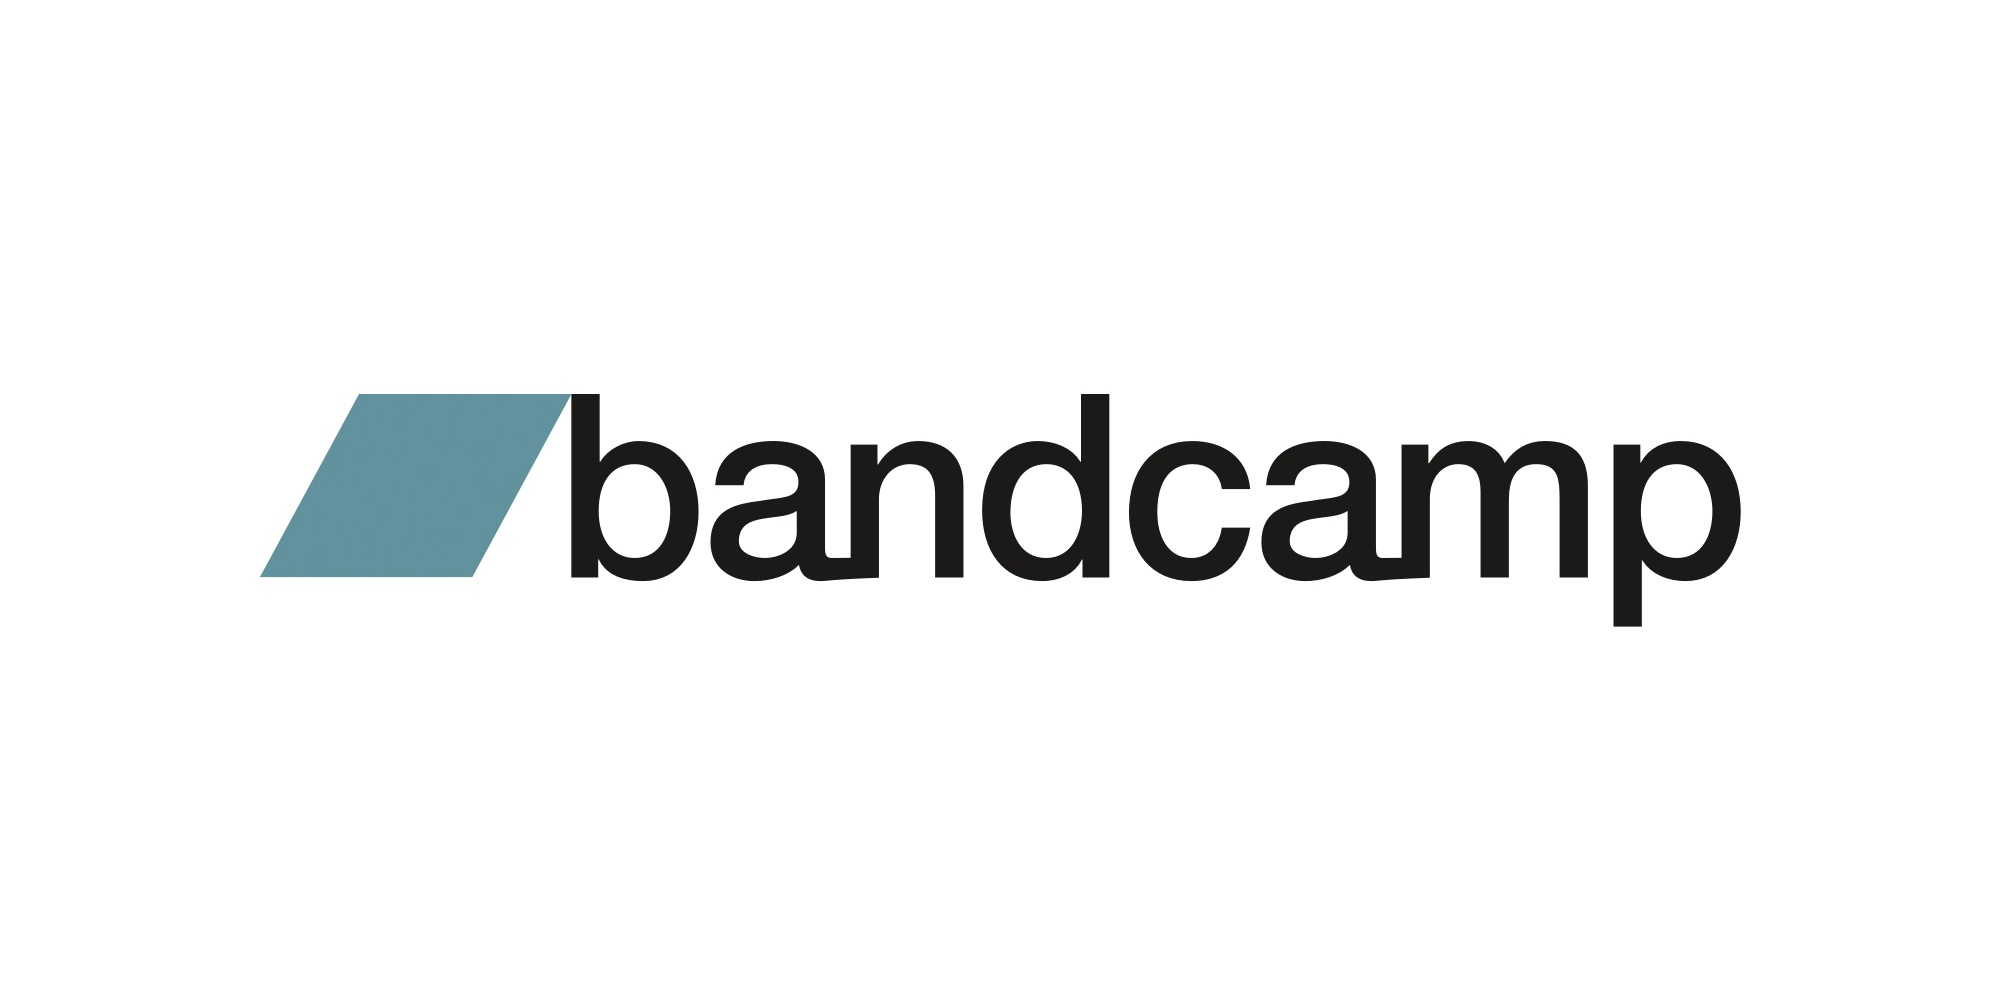 """Bandcamp to donate revenue shares for """"racial justice, equality, and change"""""""